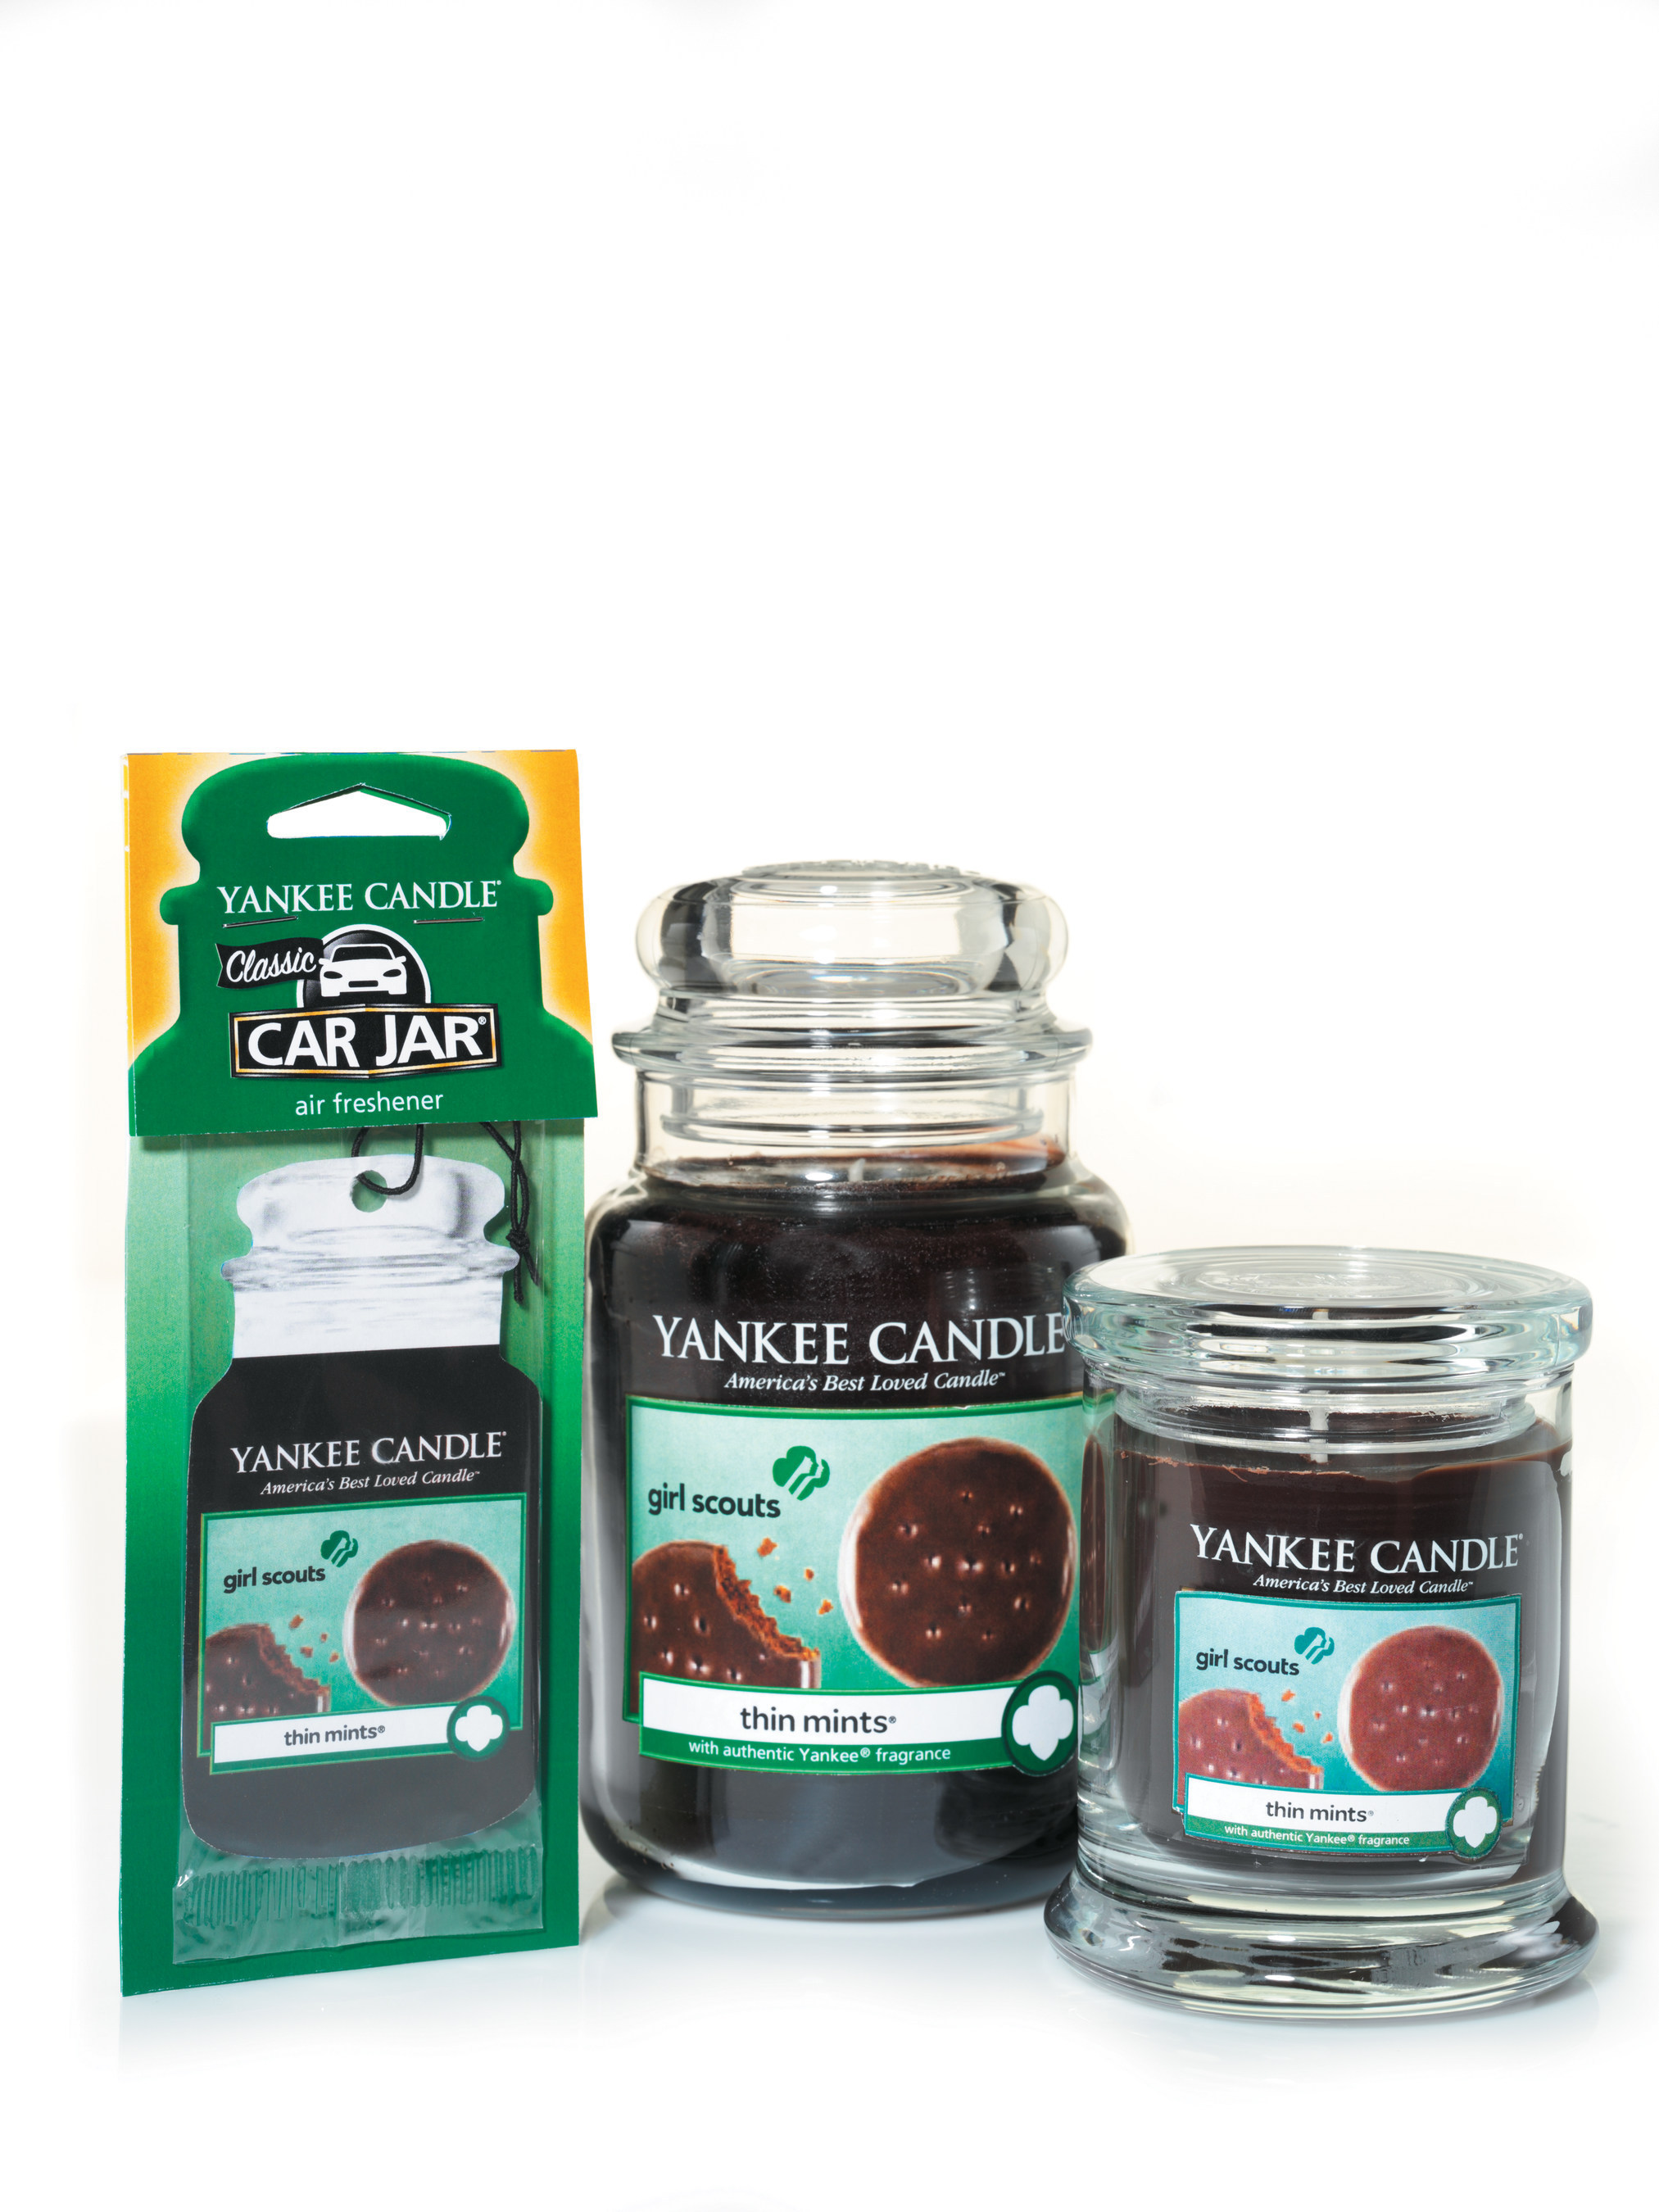 Yankee Candle's new Girl Scout Cookies Limited Edition Candle Collection comes in three different forms: ...